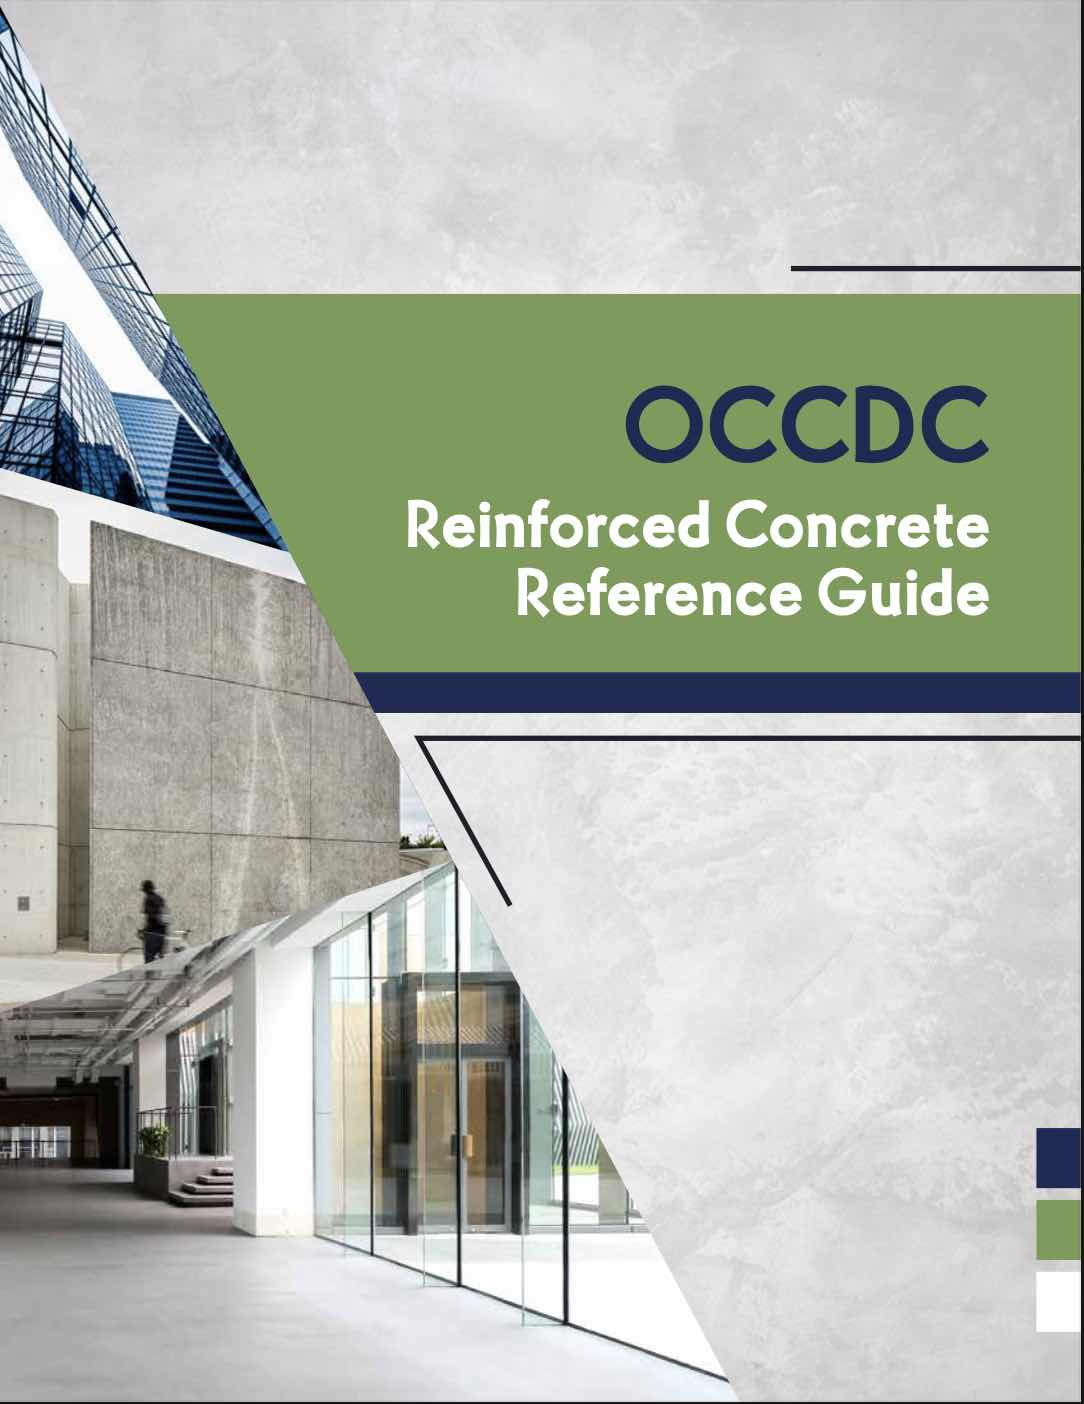 OCCDC Reinforced Concrete Reference Guide 2021